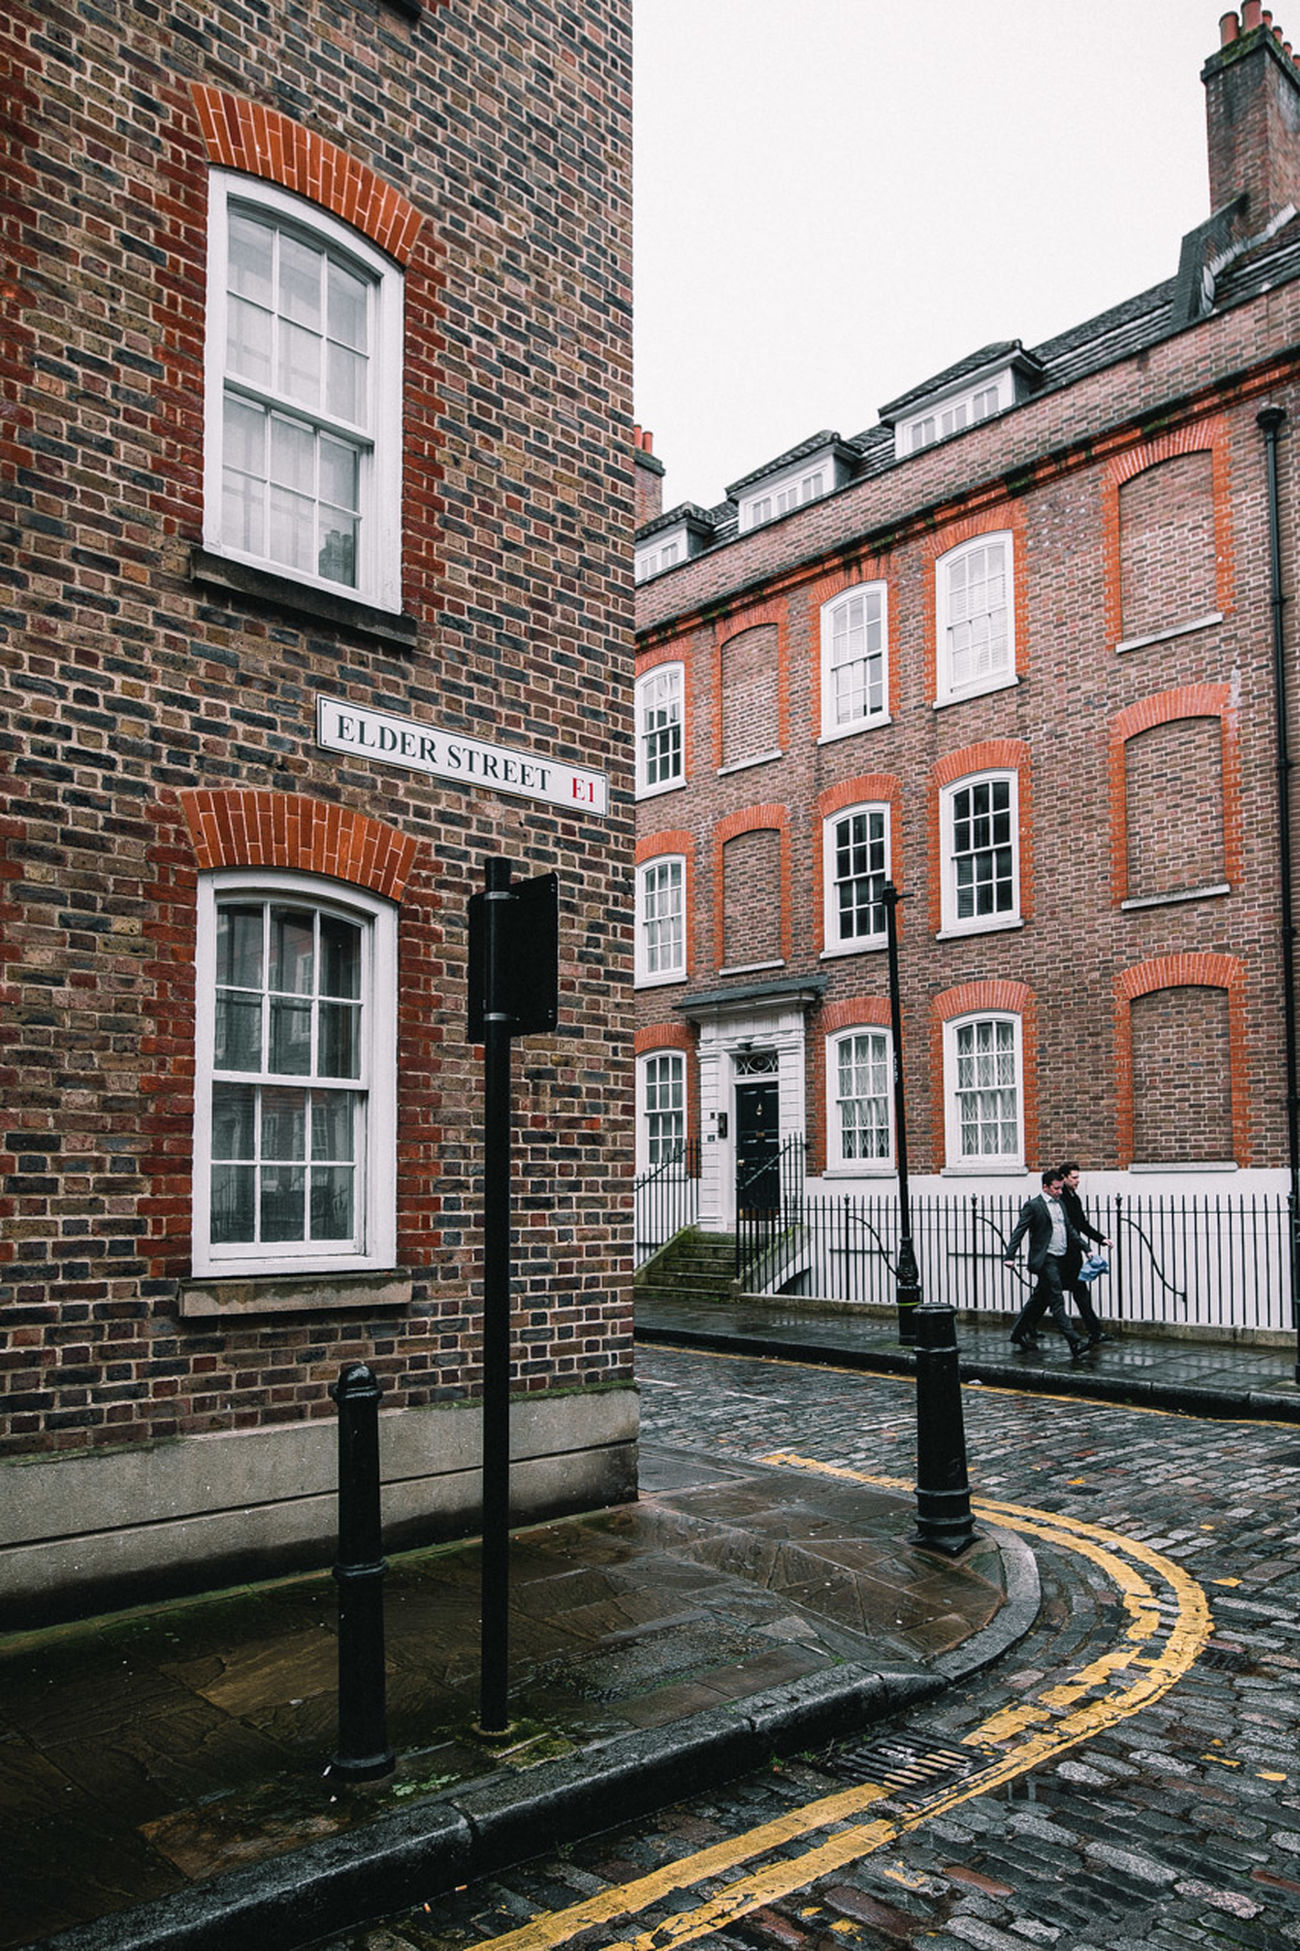 Architecture Brick Wall Building Exterior Built Structure City Day London Moody Old Streets Outdoors Street Photography